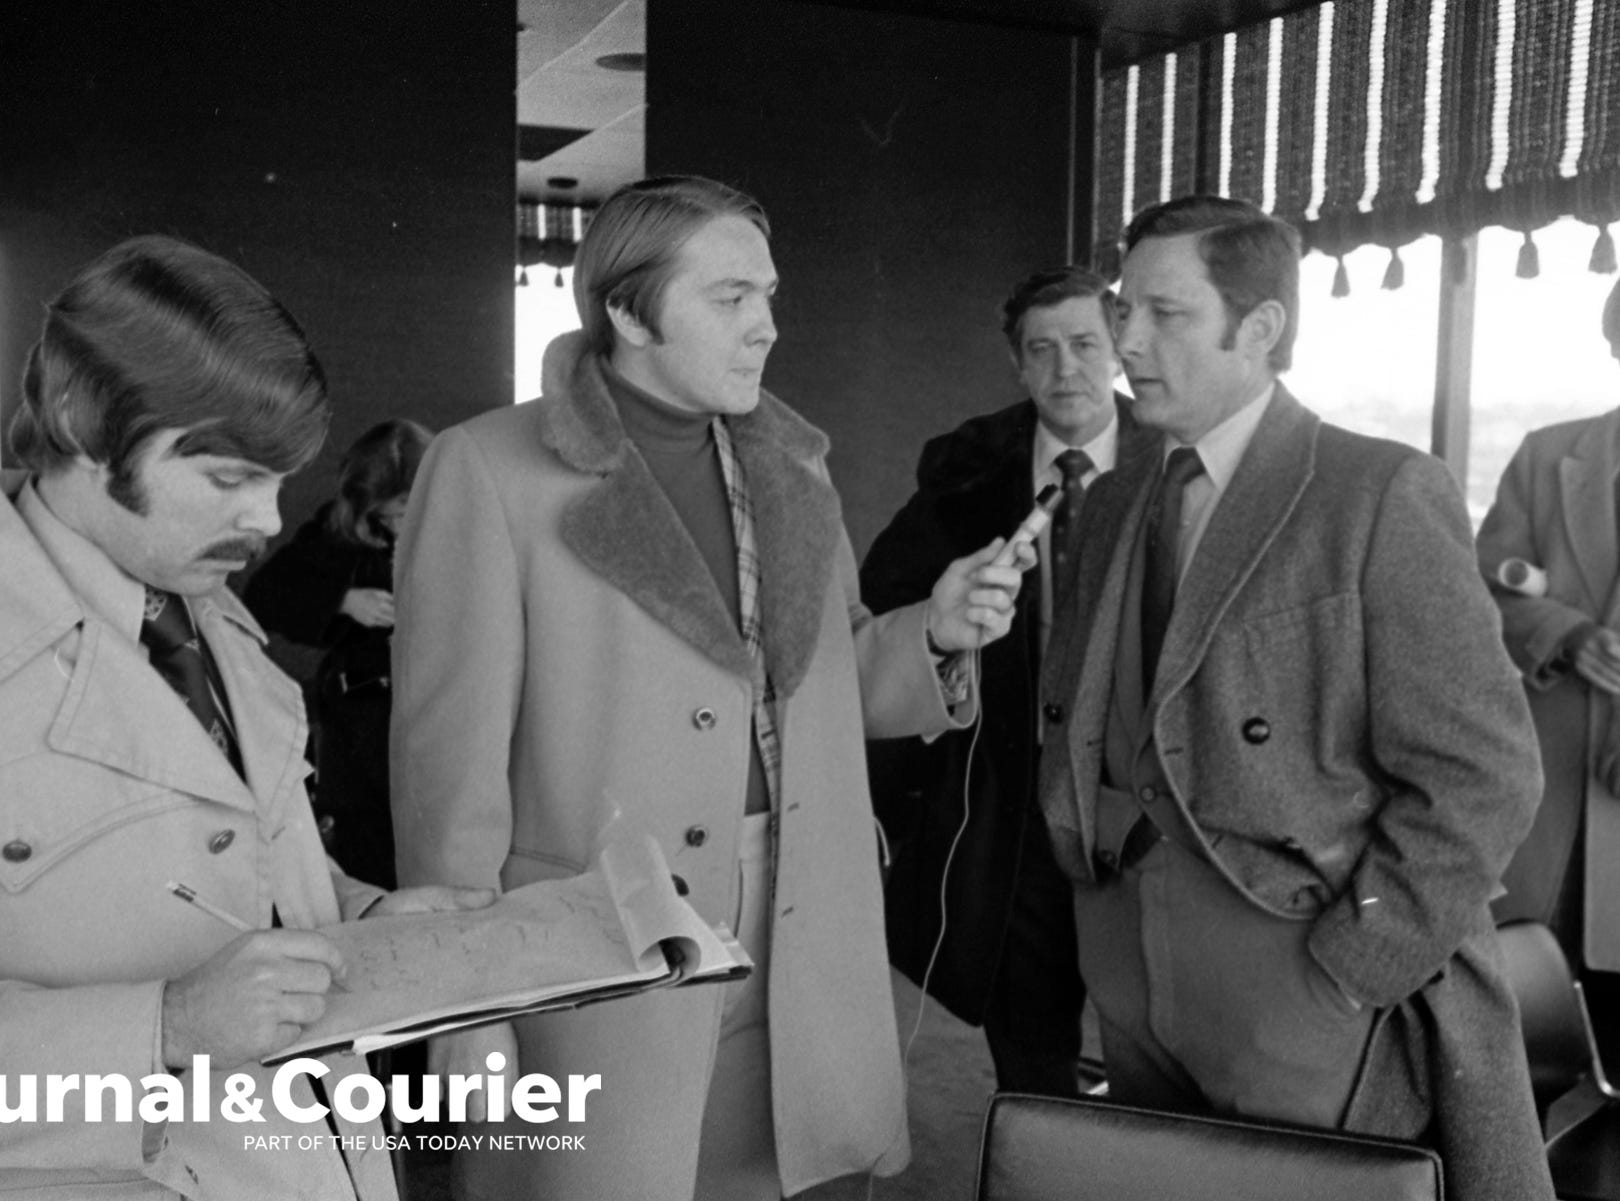 Senator Birch Bahy met with local media in Lafayette to discuss plans for the city's Railroad Relocation project. At left is Lafayette Journal & Courier reporter John Norberg and in the background is Lafayette Mayor Jim Reihle. Photo taken Jan. 12, 1974.